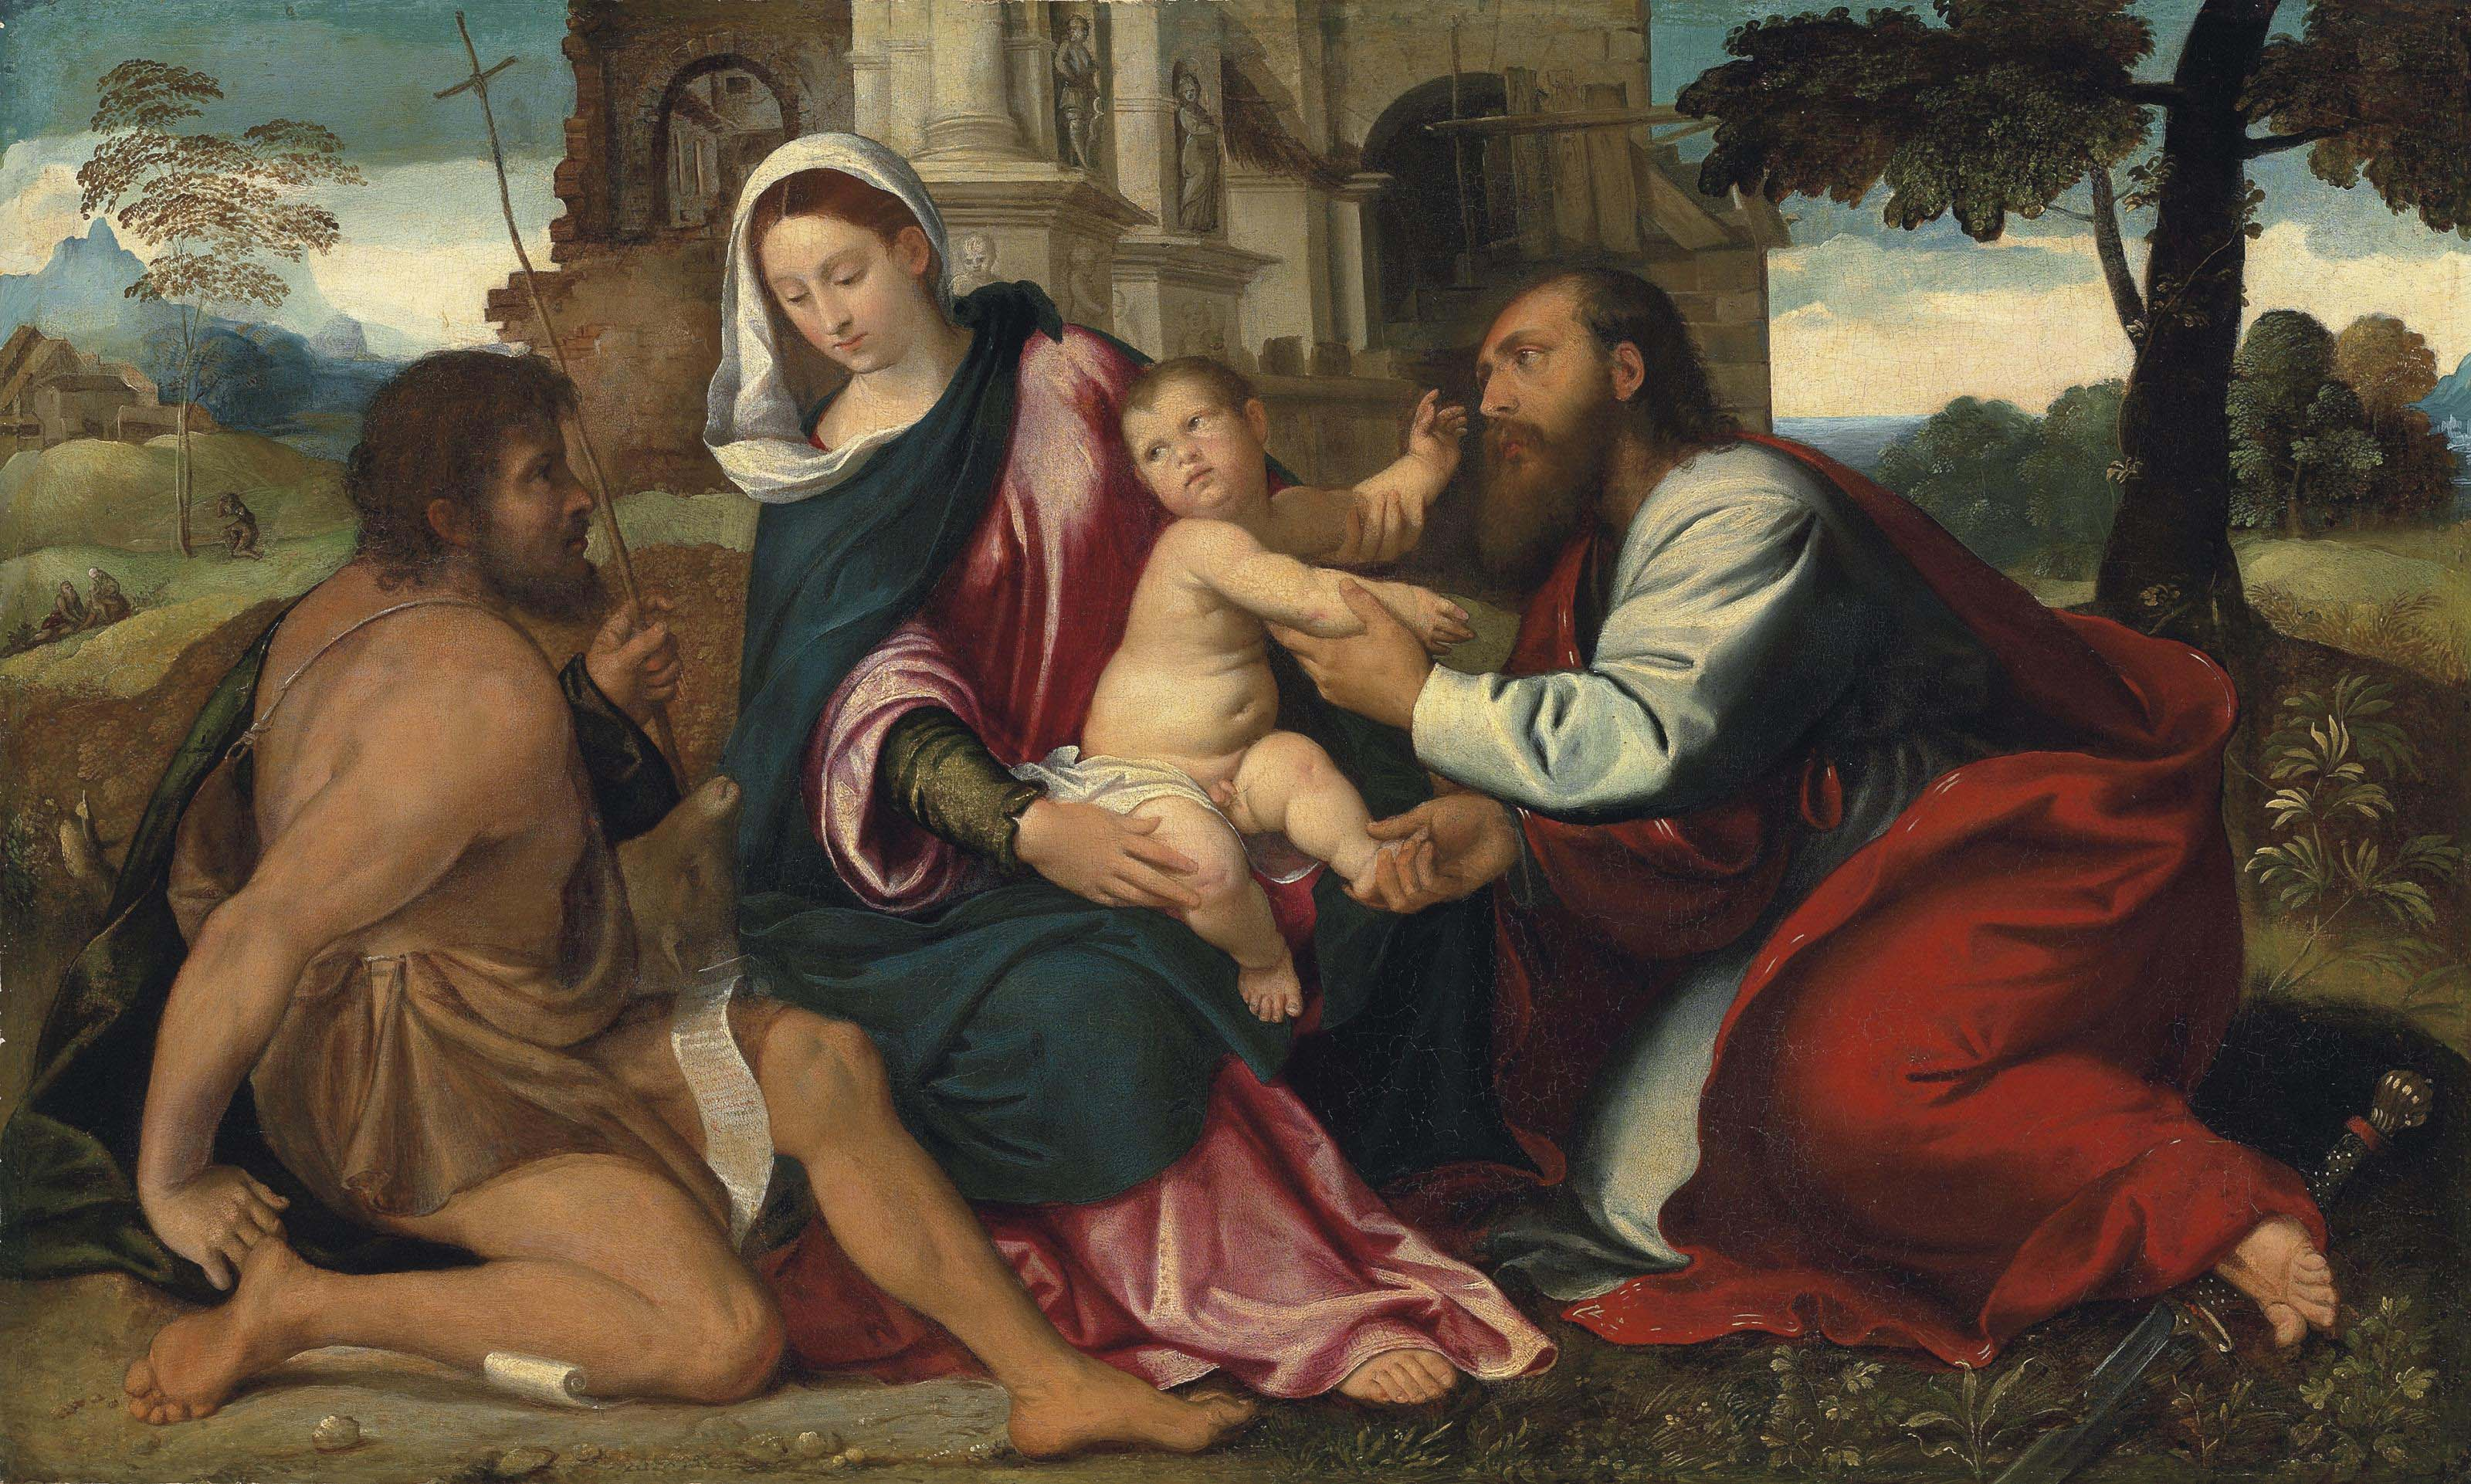 The Madonna and Child with Saints John the Baptist and Paul